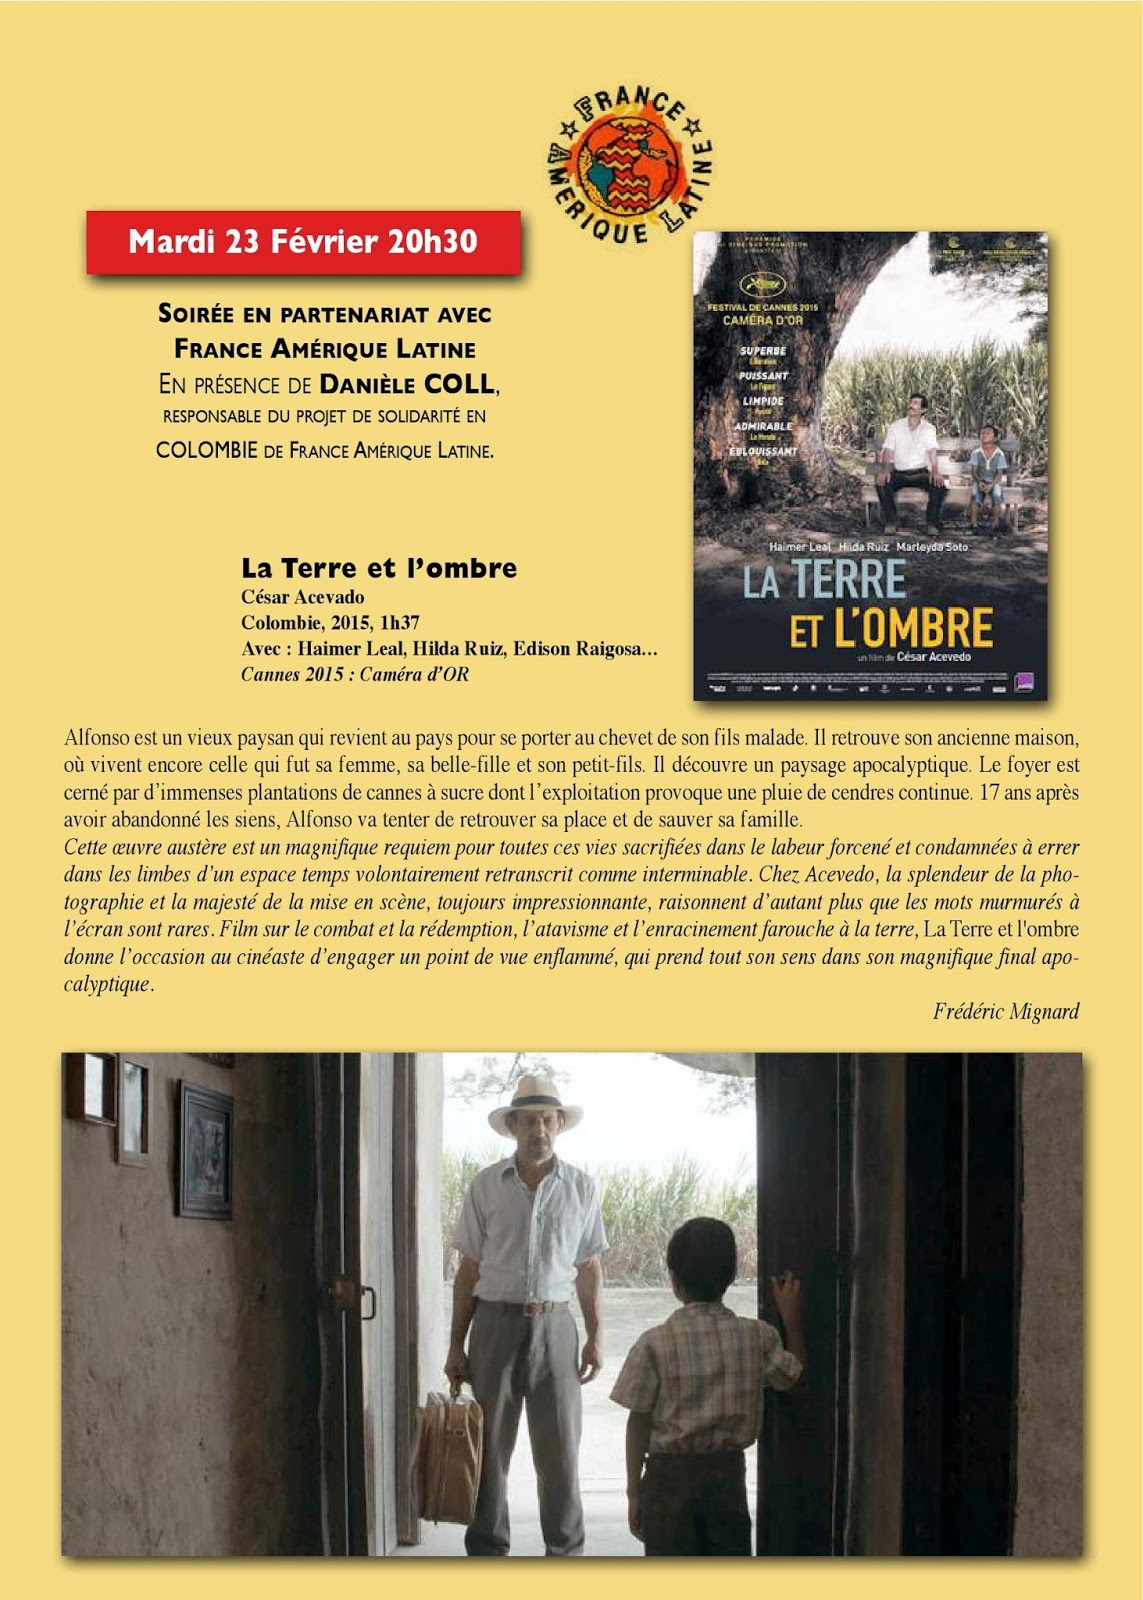 « La terre et l'ombre », film colombien: projection-débat à Martigues 13